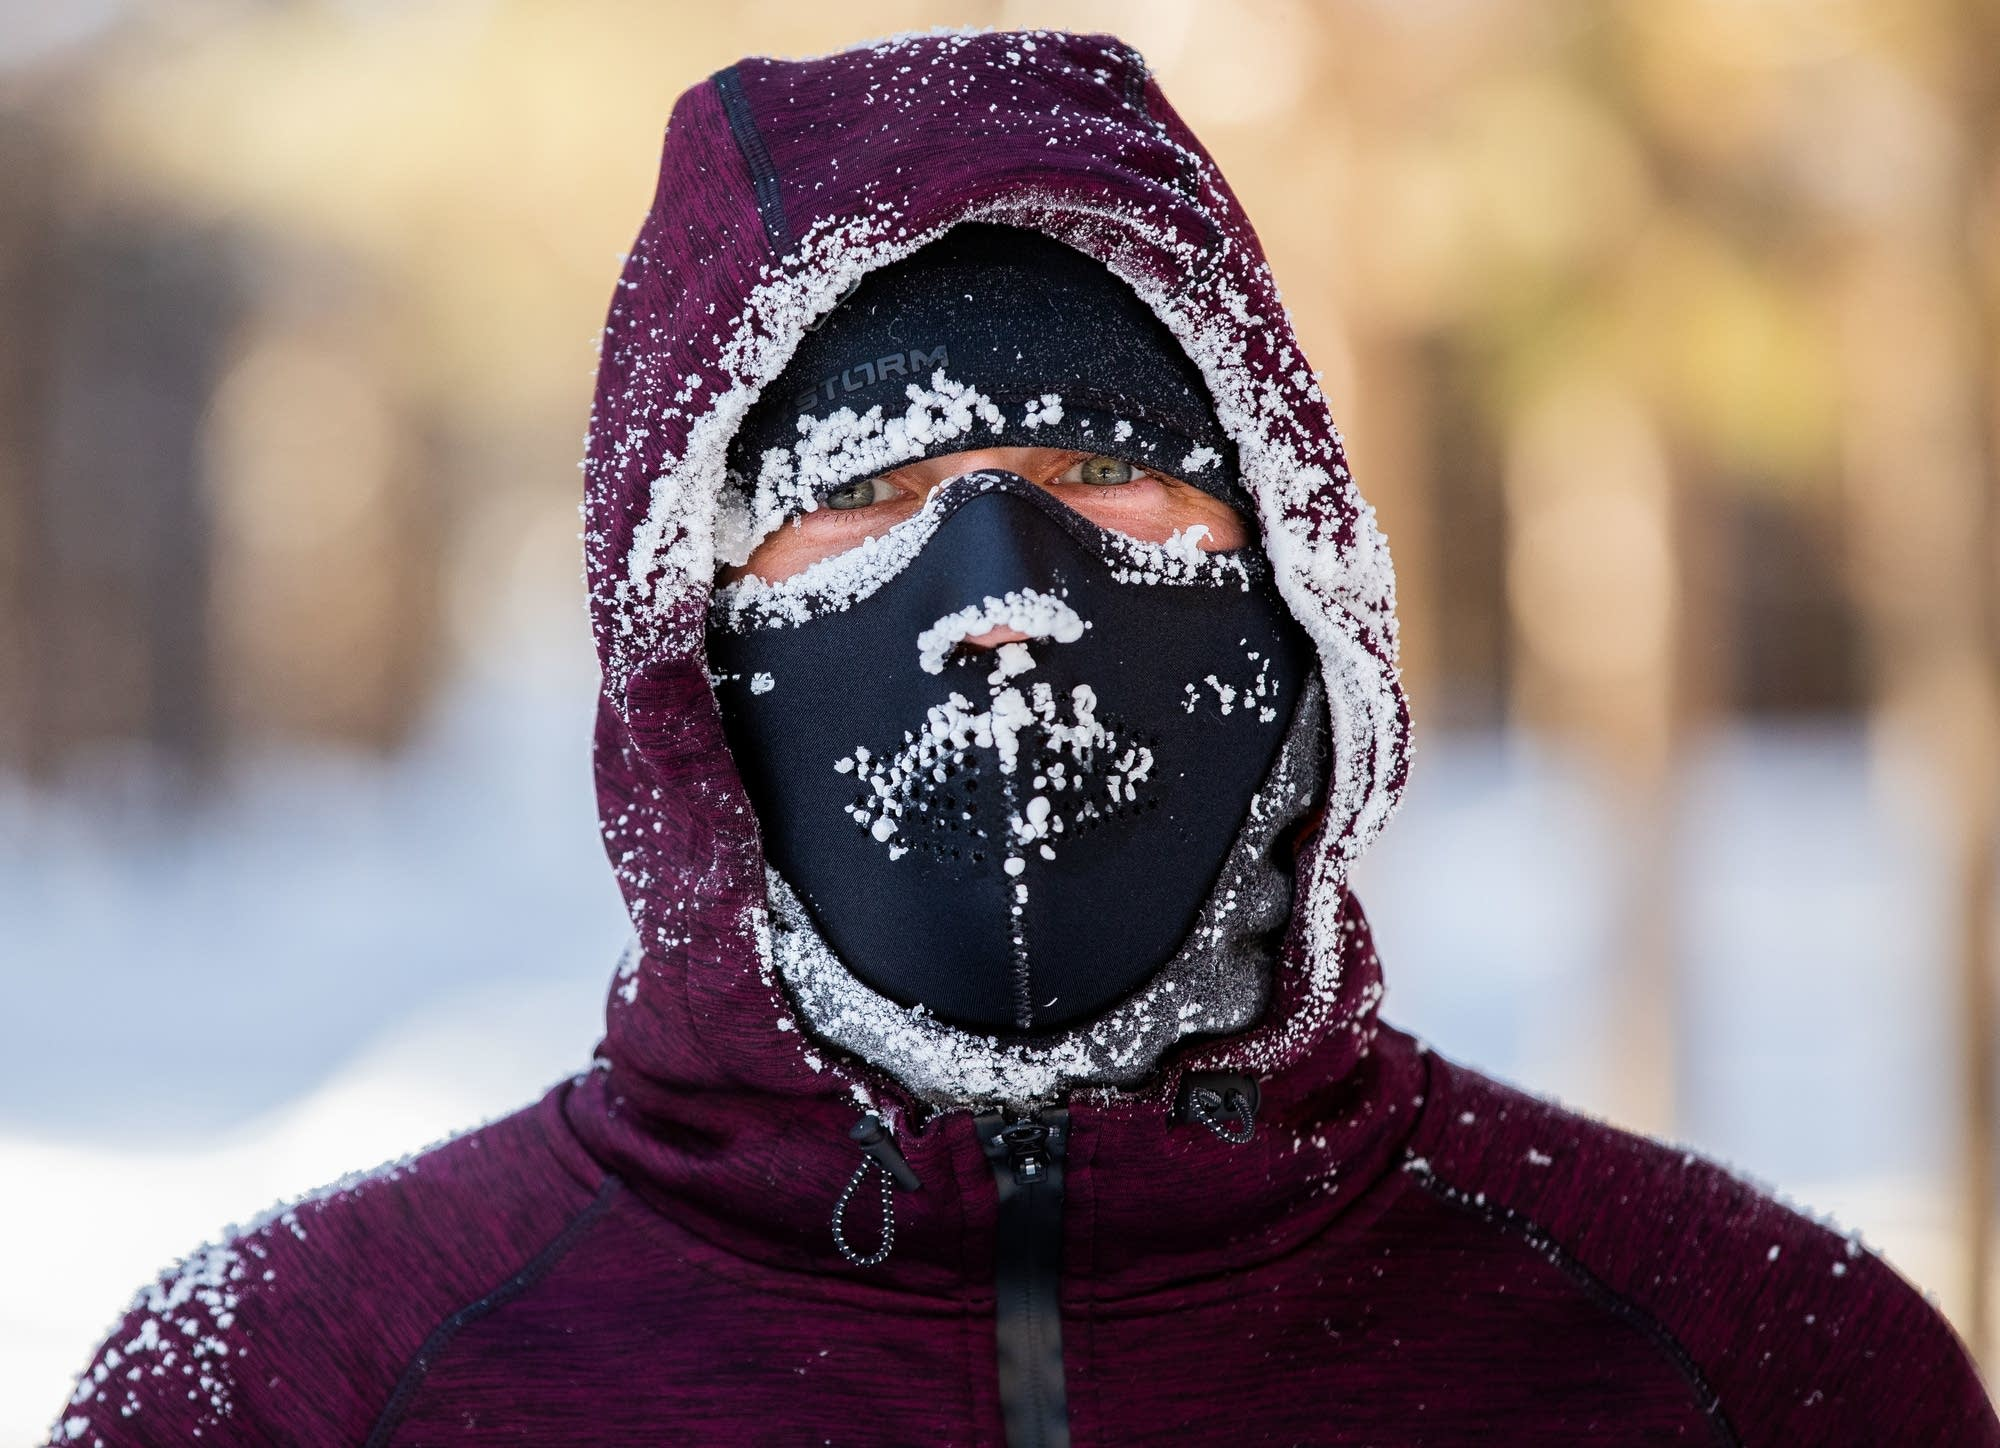 Icicles form on the face of Kyle Johnson after he finished a run.